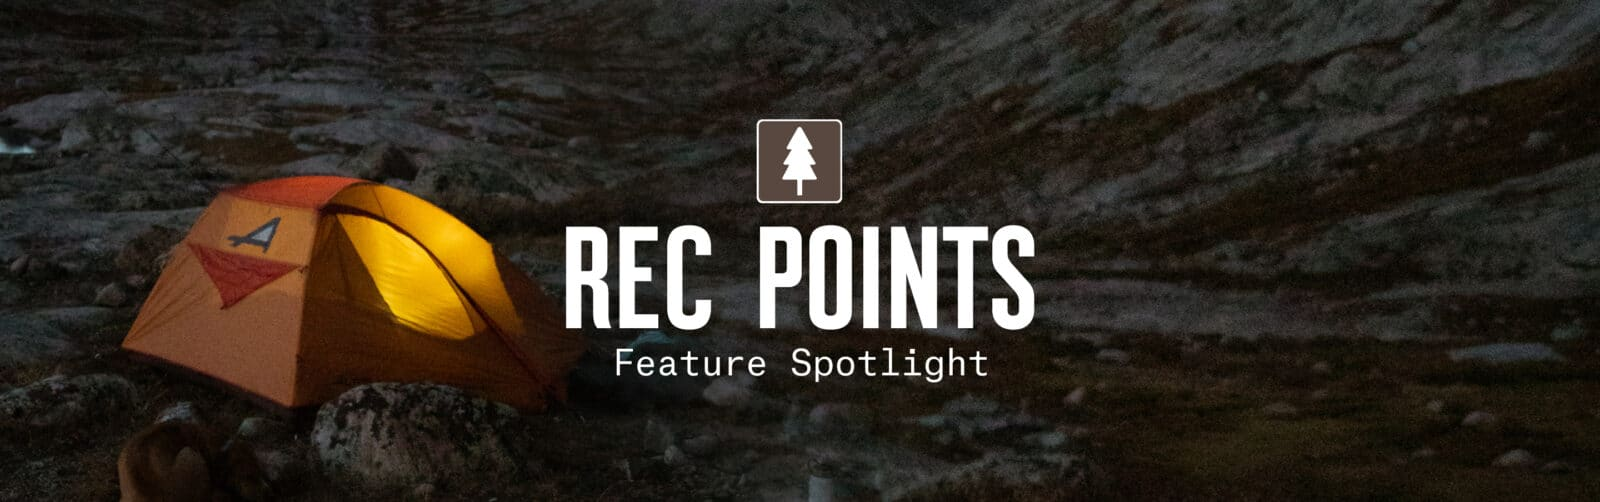 How to Use BC Rec Points - Hero